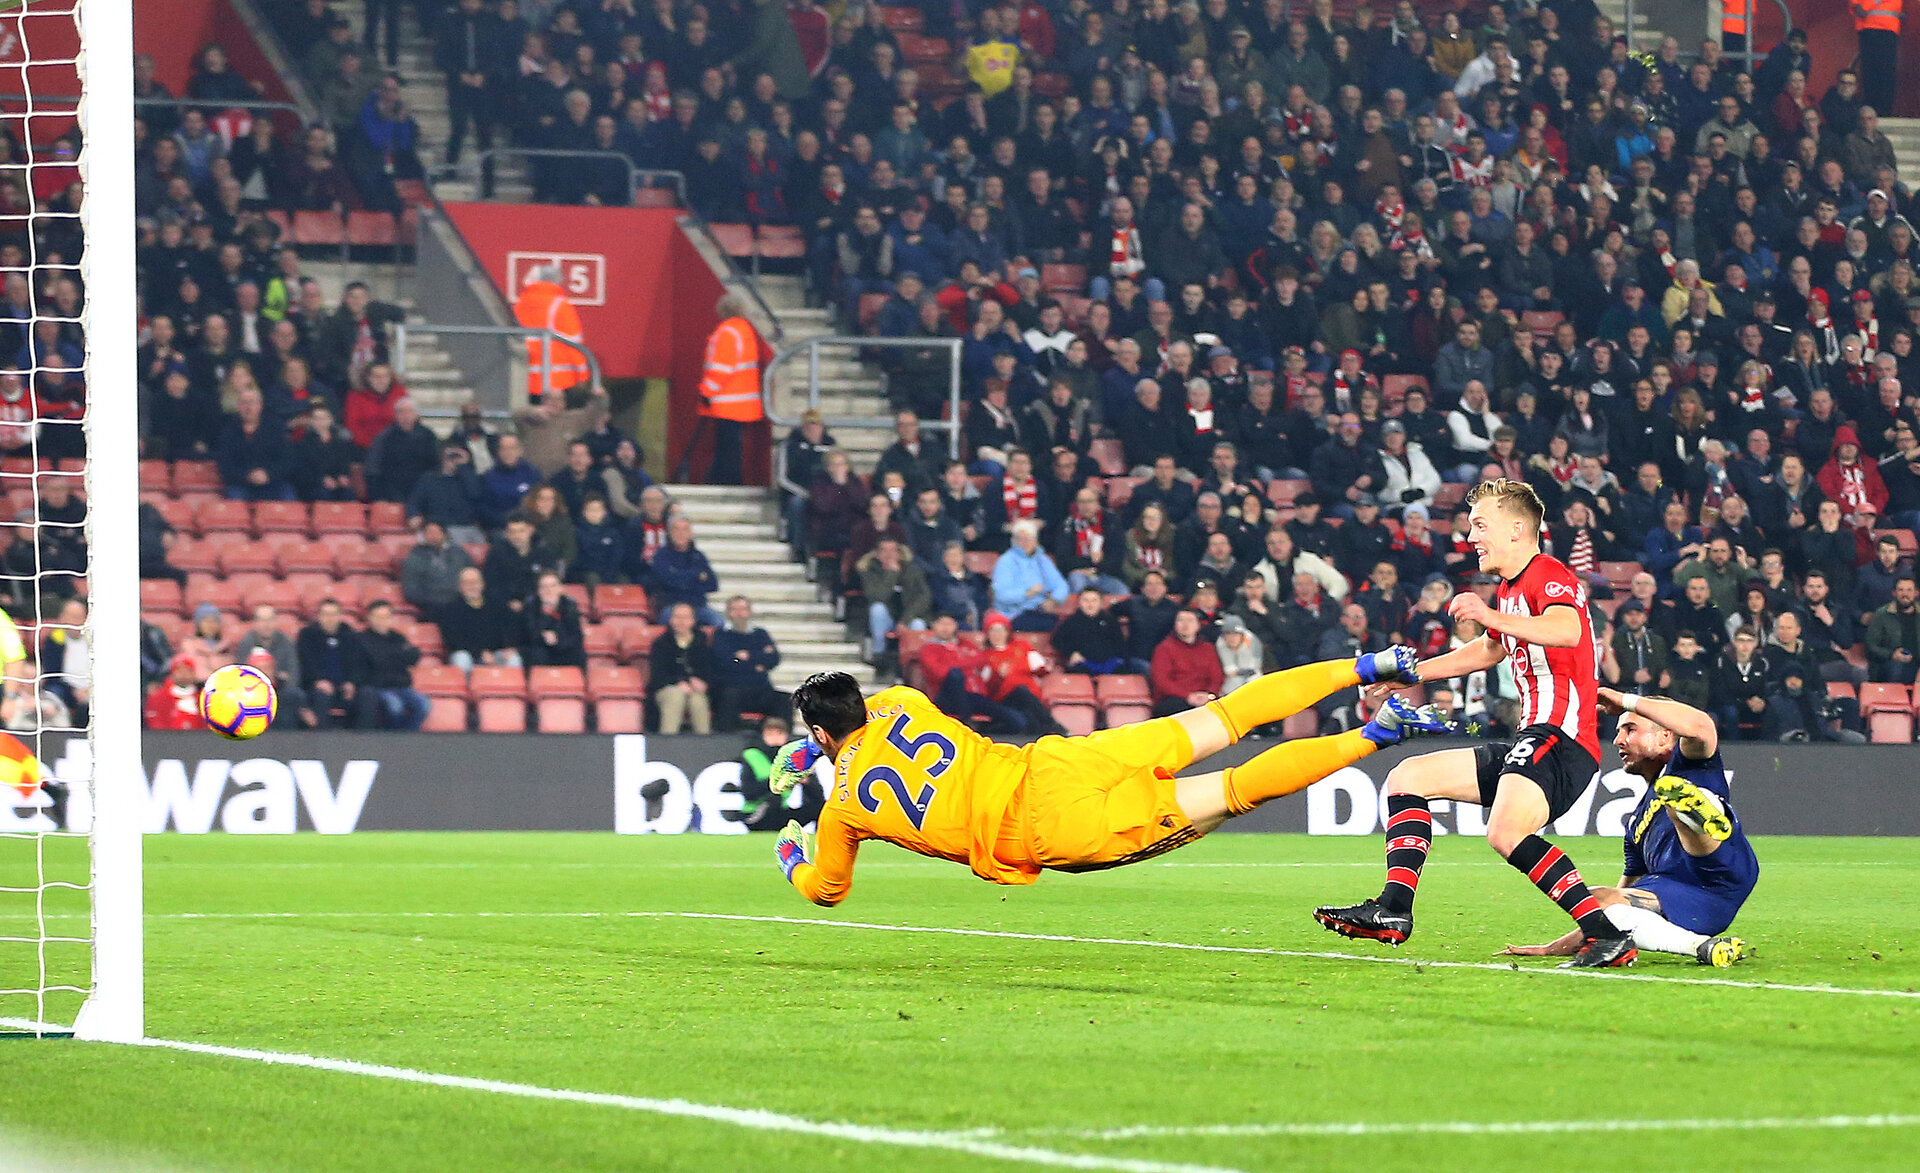 SOUTHAMPTON, ENGLAND - FEBRUARY 27: James Ward-Prowse of Southampton scores his teams second goal during the Premier League match between Southampton FC and Fulham FC at St Mary's Stadium on February 27, 2019 in Southampton, United Kingdom. (Photo by Matt Watson/Southampton FC via Getty Images)